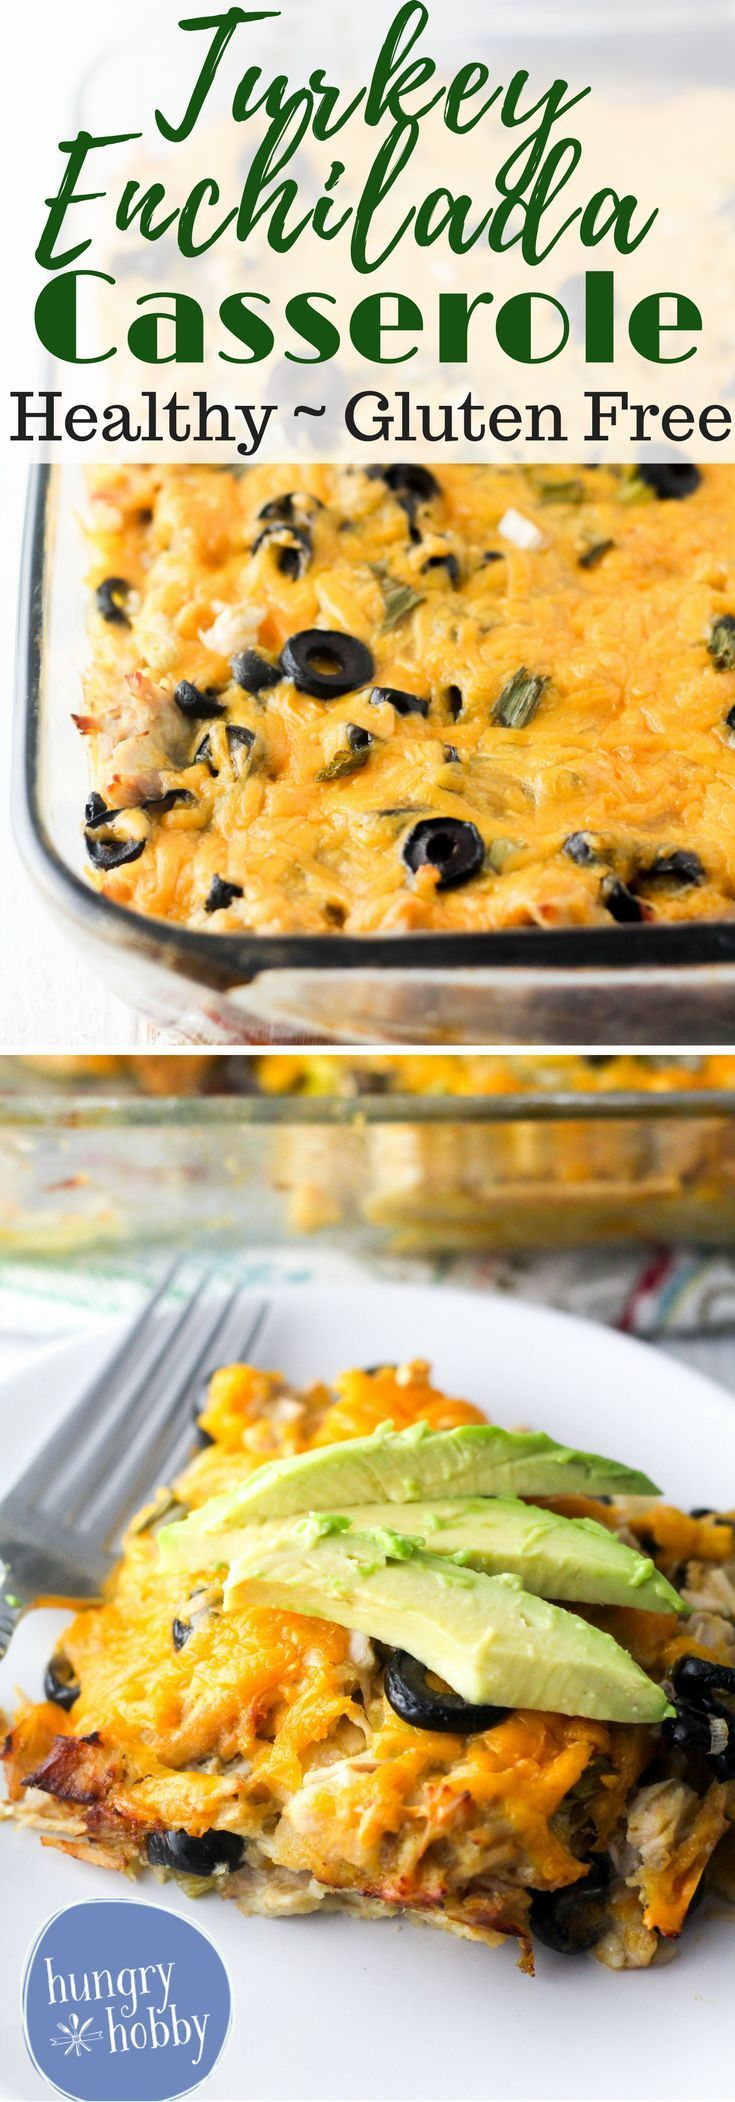 This Healthy Gluten Free Turkey Enchilada Bake recipe via Dietitian Kelli Shallal of Hungry Hobby via @hungryhobby